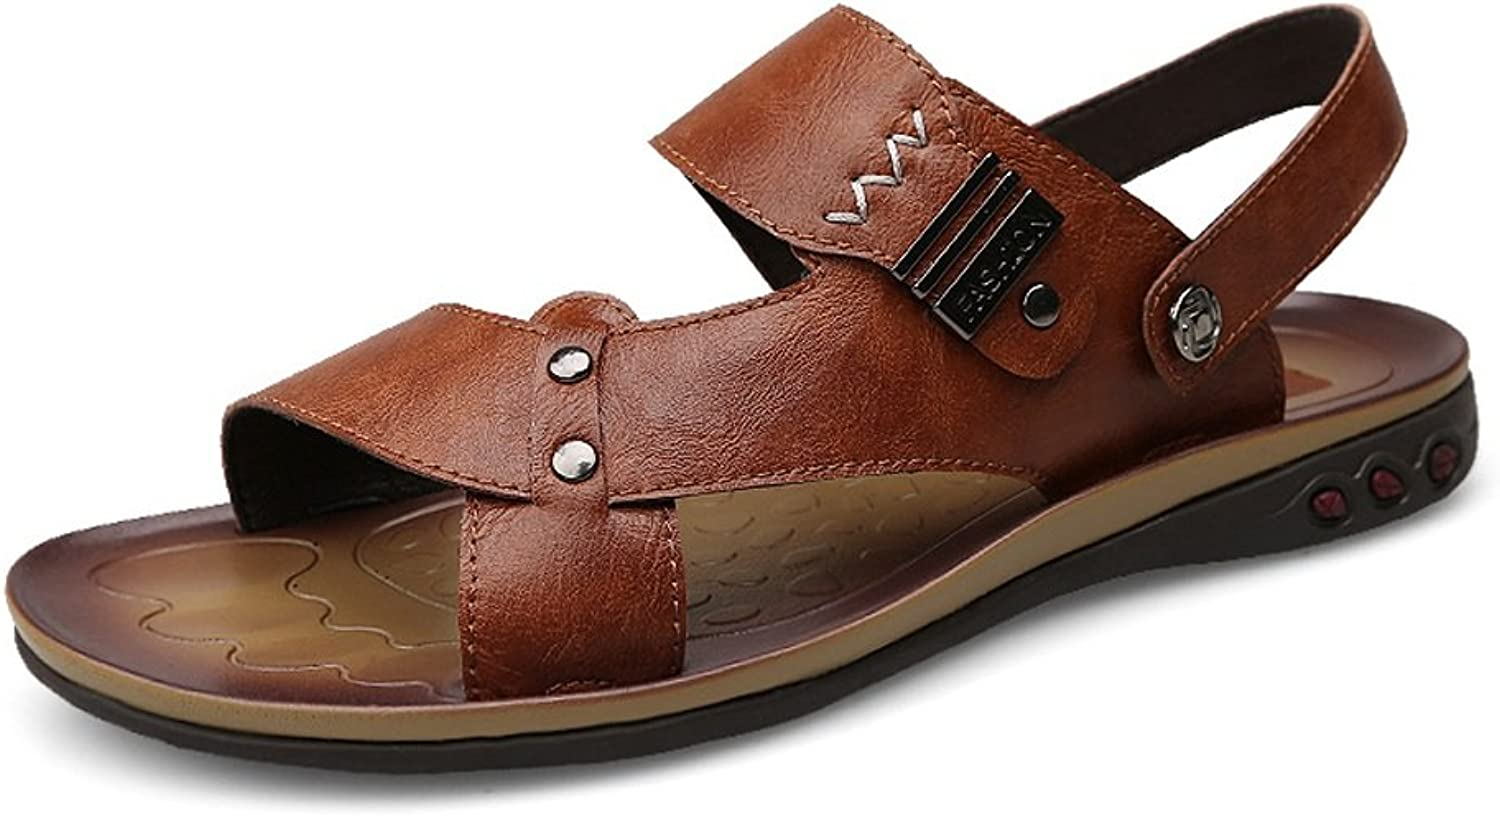 MUMUWU Men's Faux Leather Beach Slippers Casual Non-slip Soft Sole Sandals shoes Adjustable Backless guess